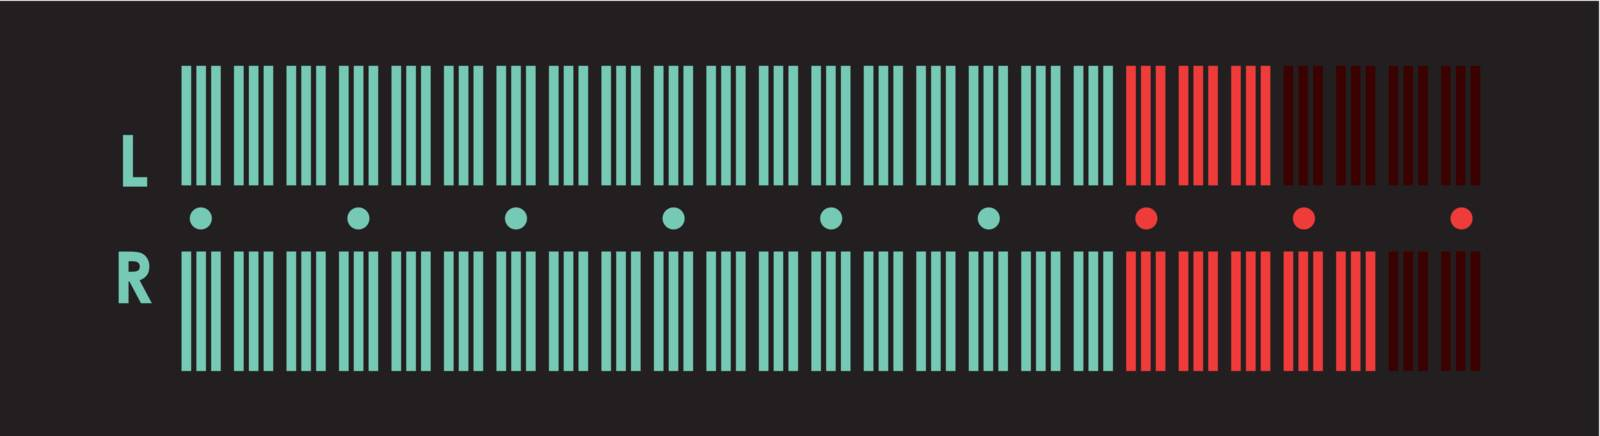 The indicator of the musical equipment. A vector illustration.